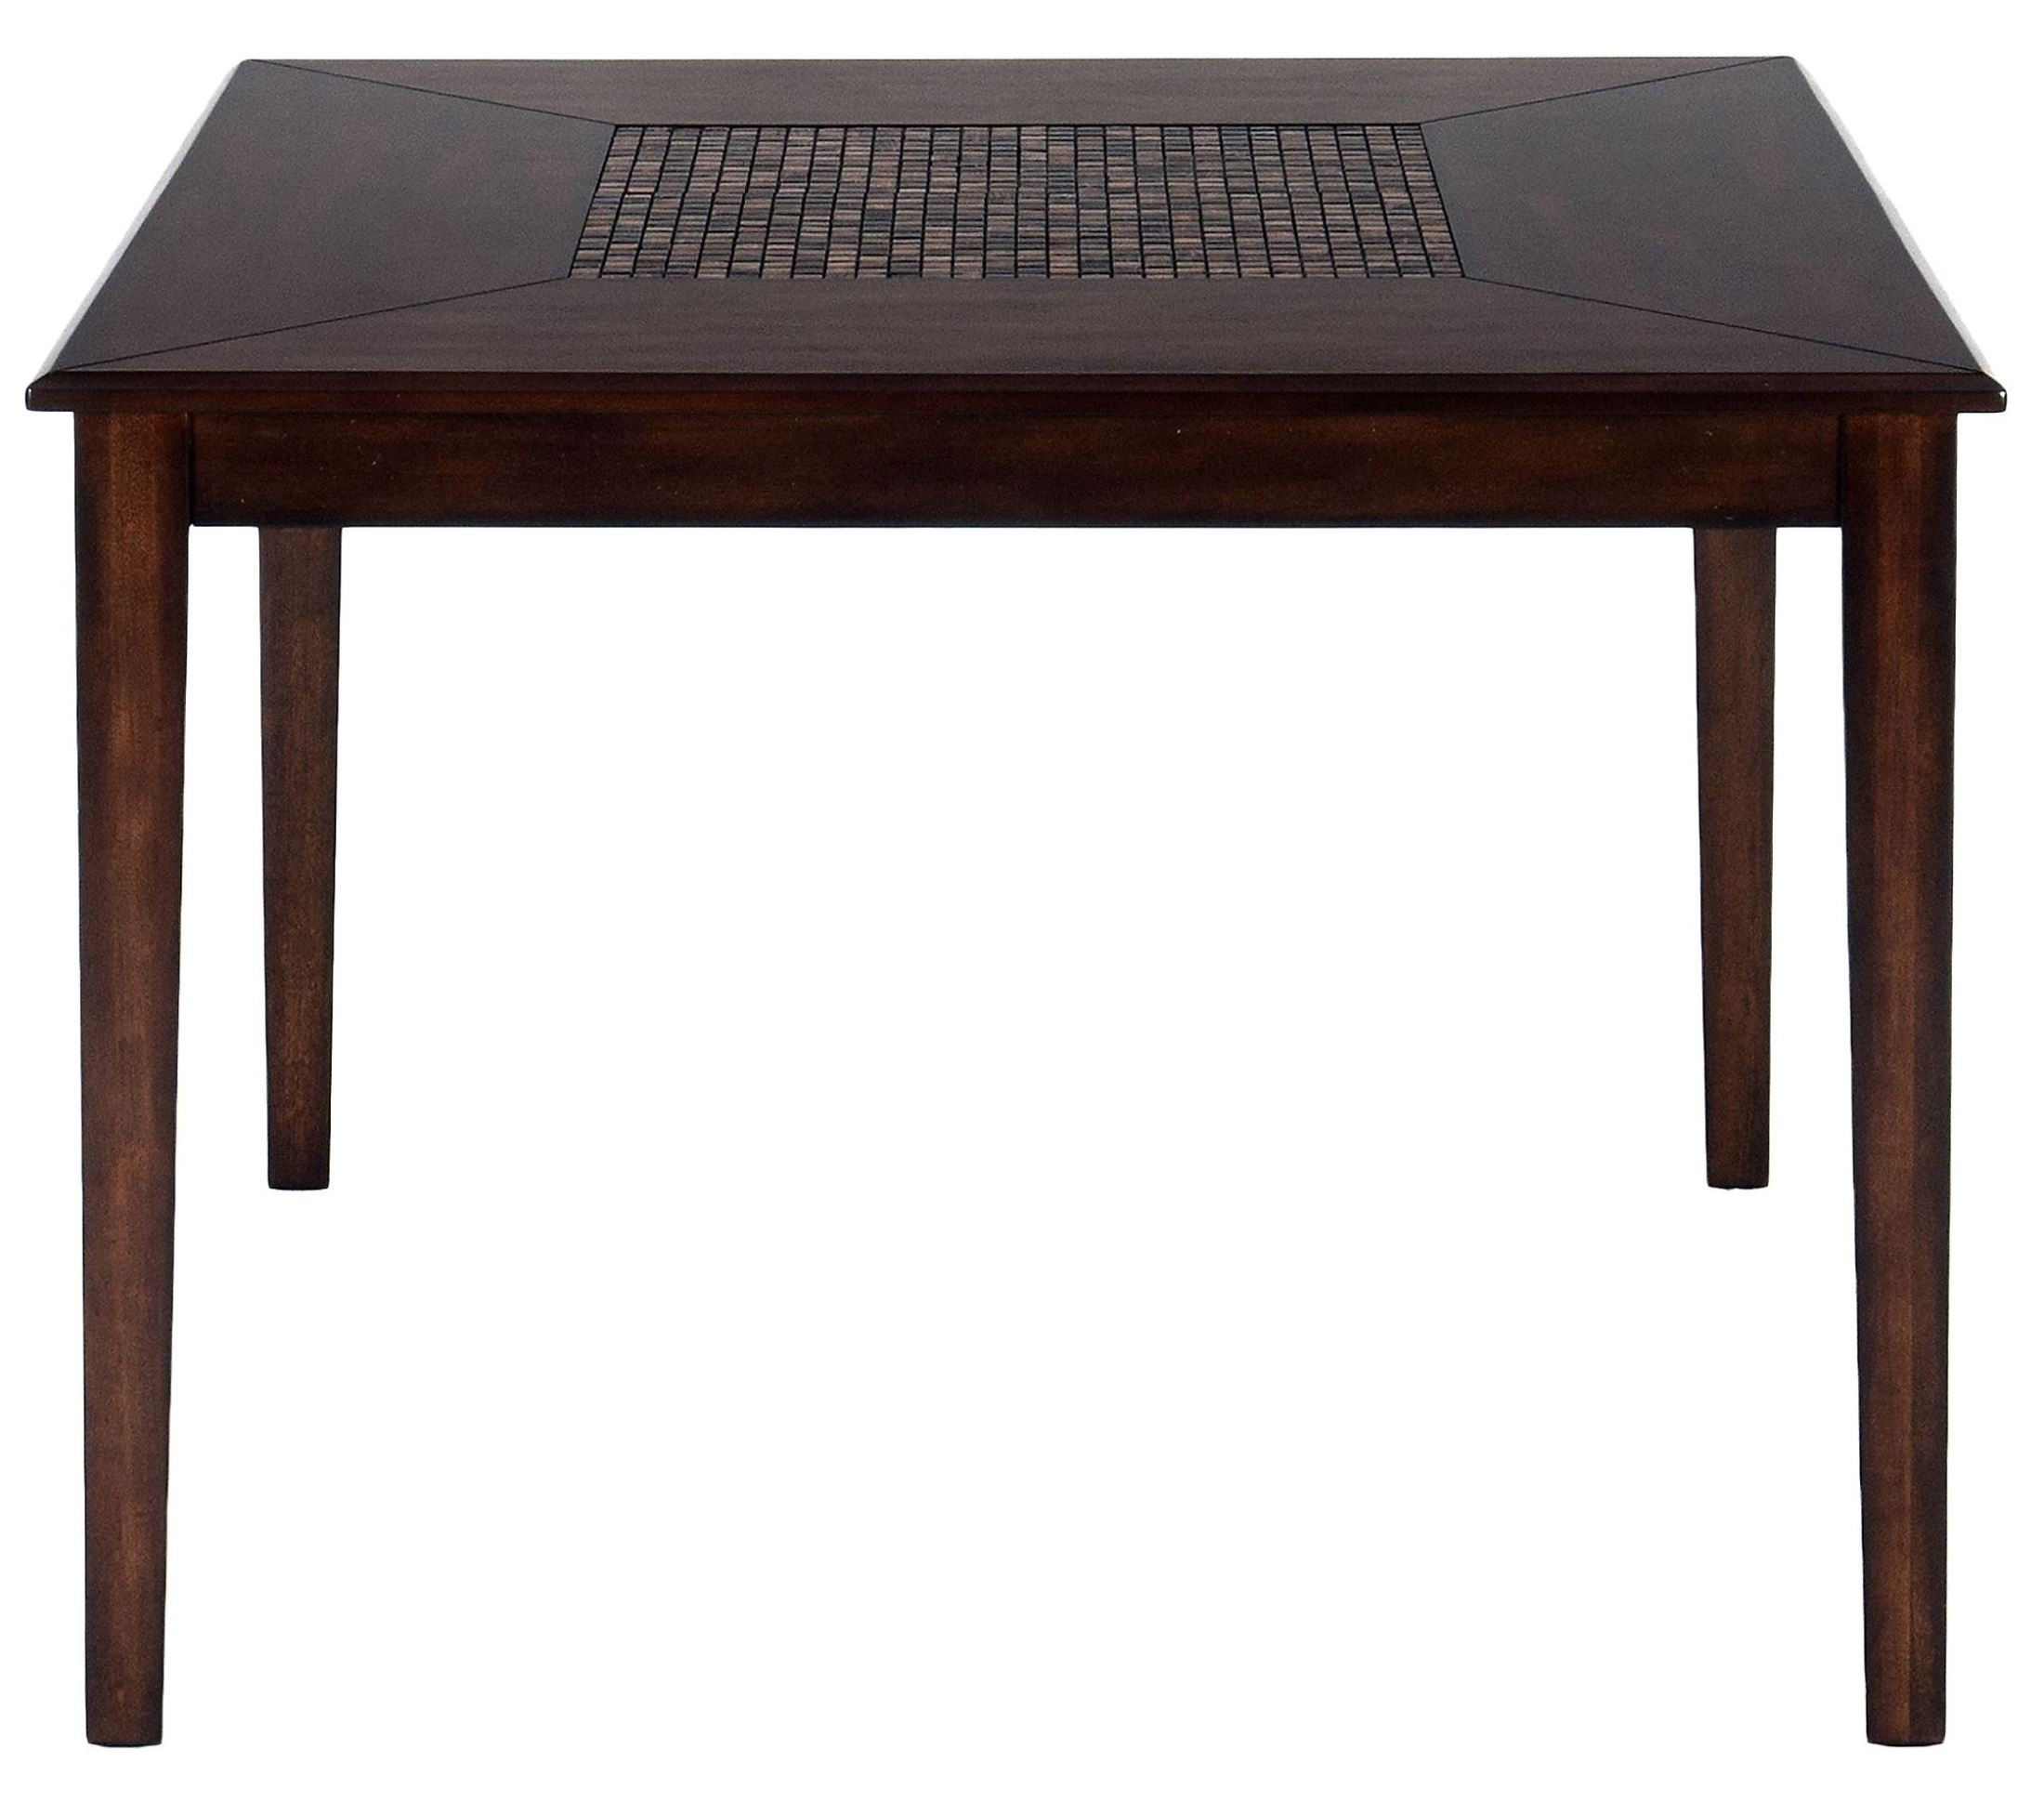 Baroque brown mosaic inlay counter height dining table for Baroque dining table set